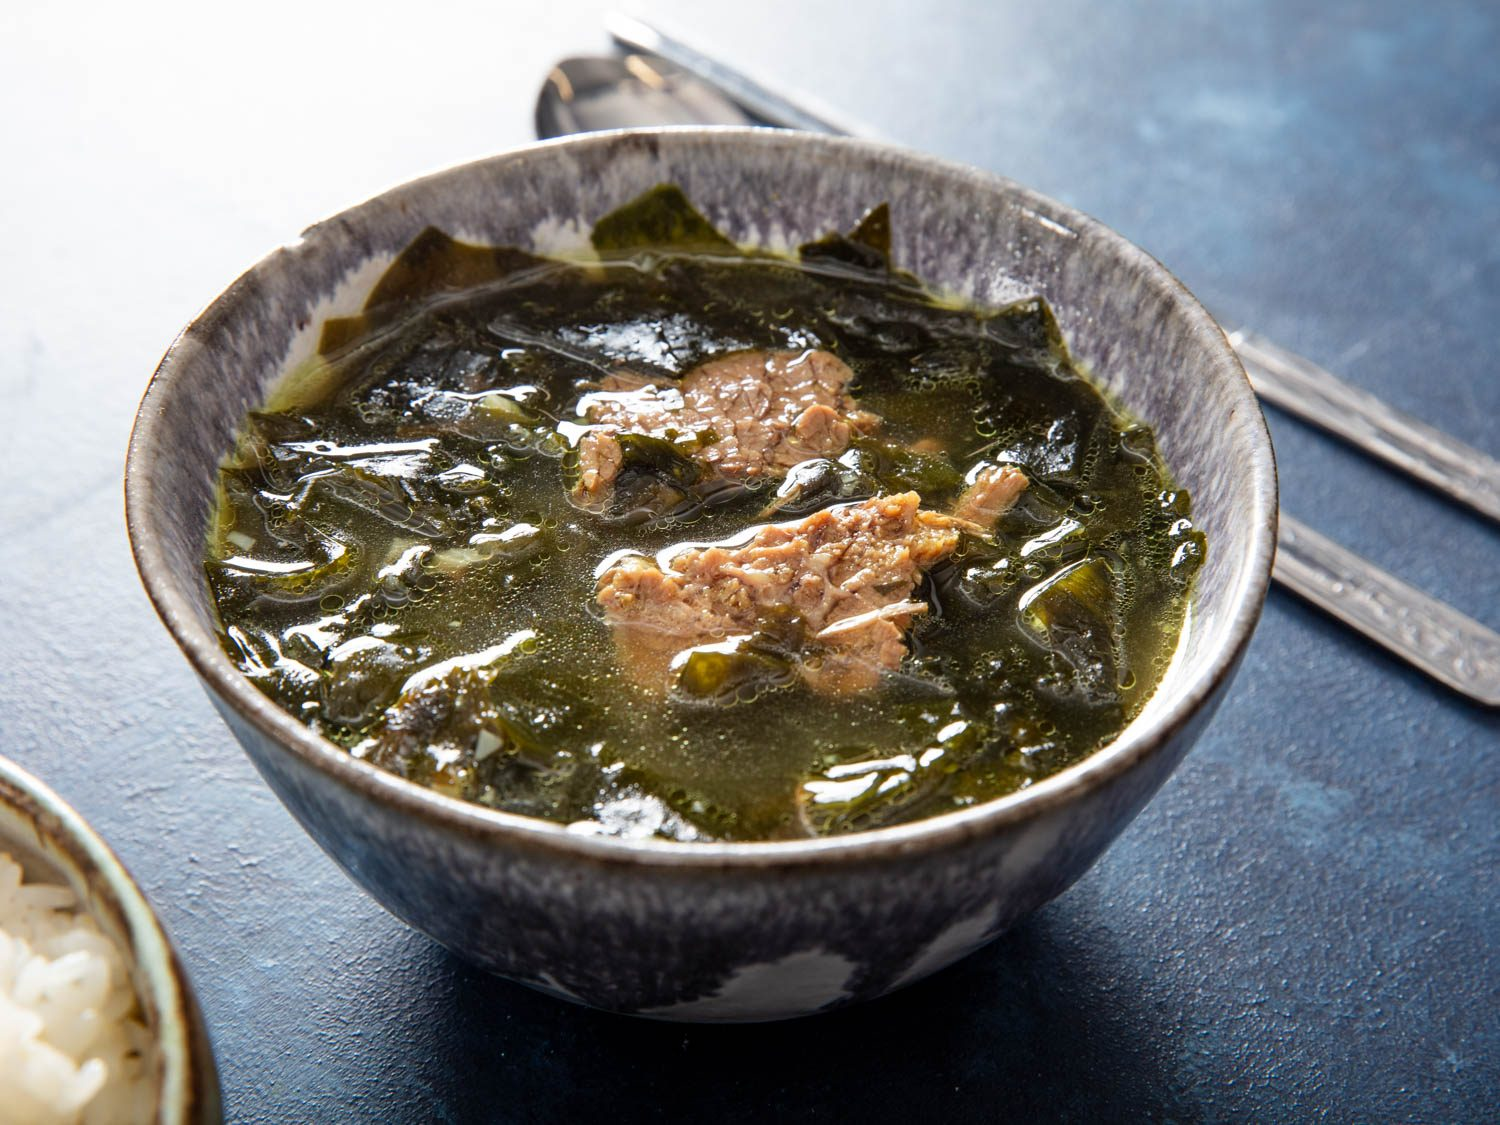 Korean Seaweed and Brisket Soup (Miyeok-Guk)